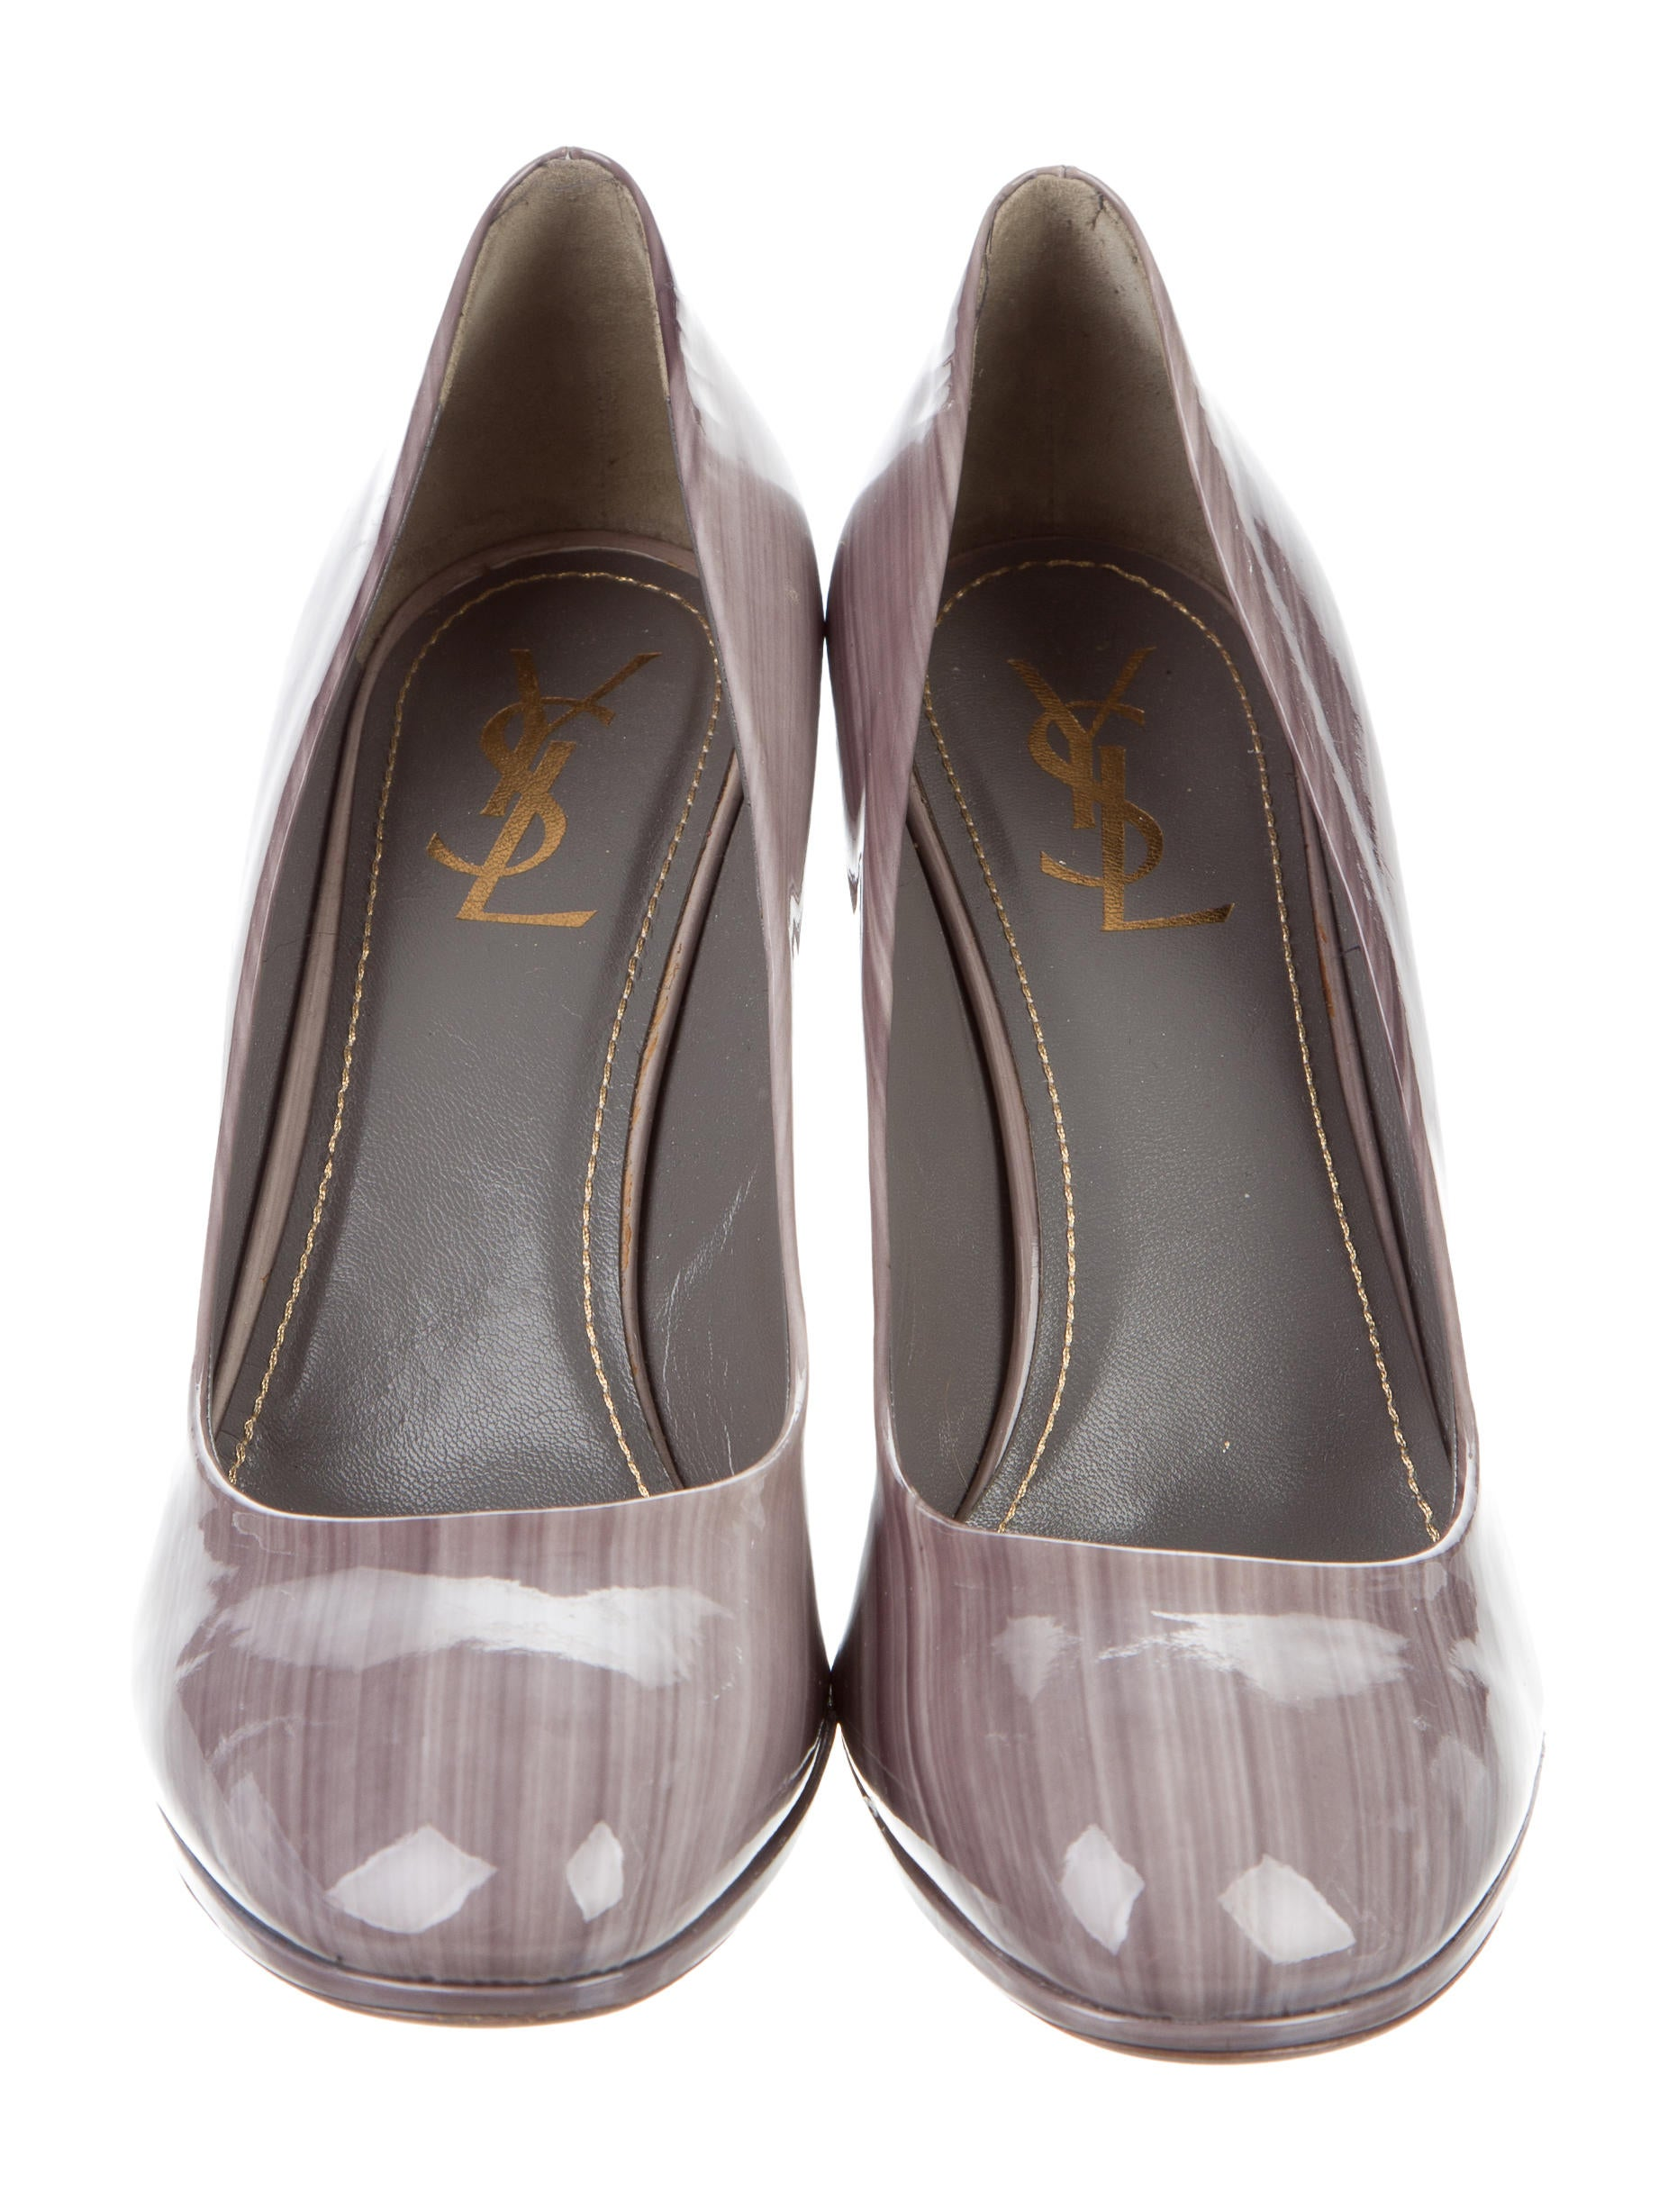 Yves Saint Laurent Striped Patent Leather Pumps Shoes  : YVE583883enlarged from www.therealreal.com size 1862 x 2456 jpeg 341kB